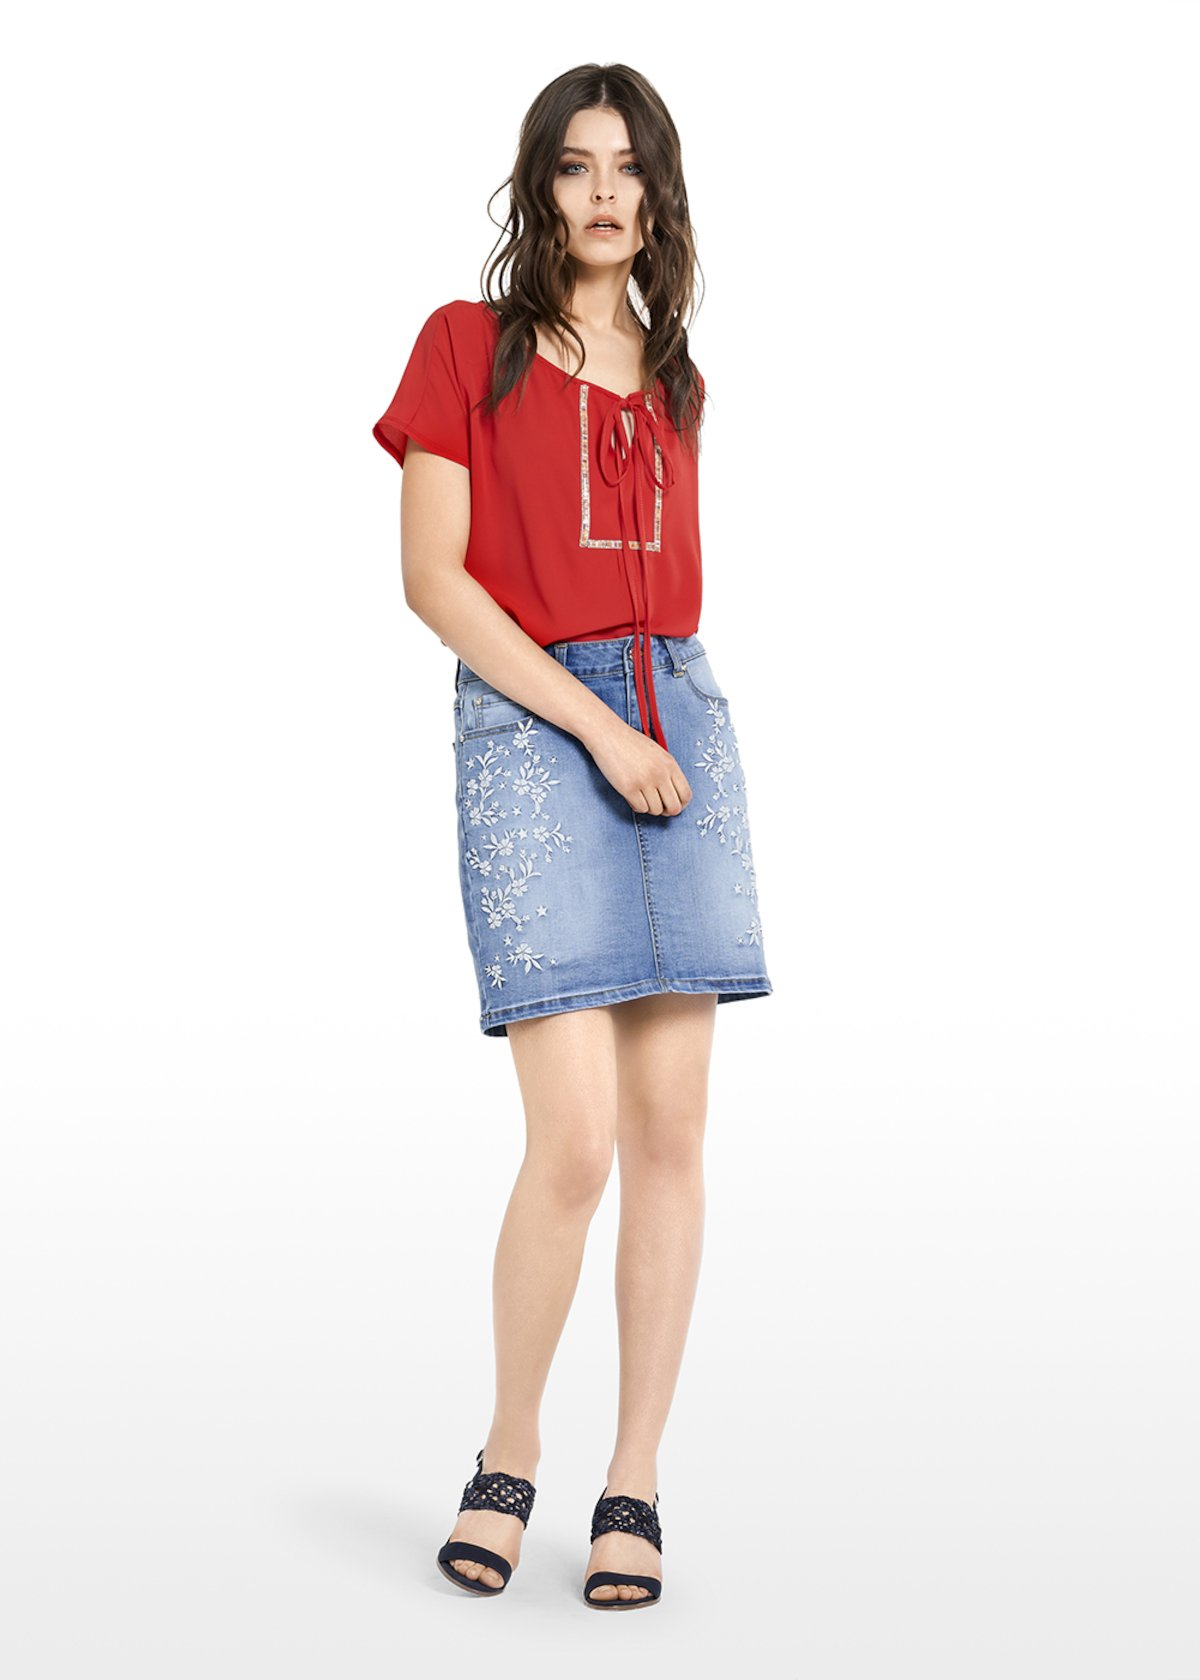 Gecky denim skirt with embroidered flowers - Light Denim - Woman